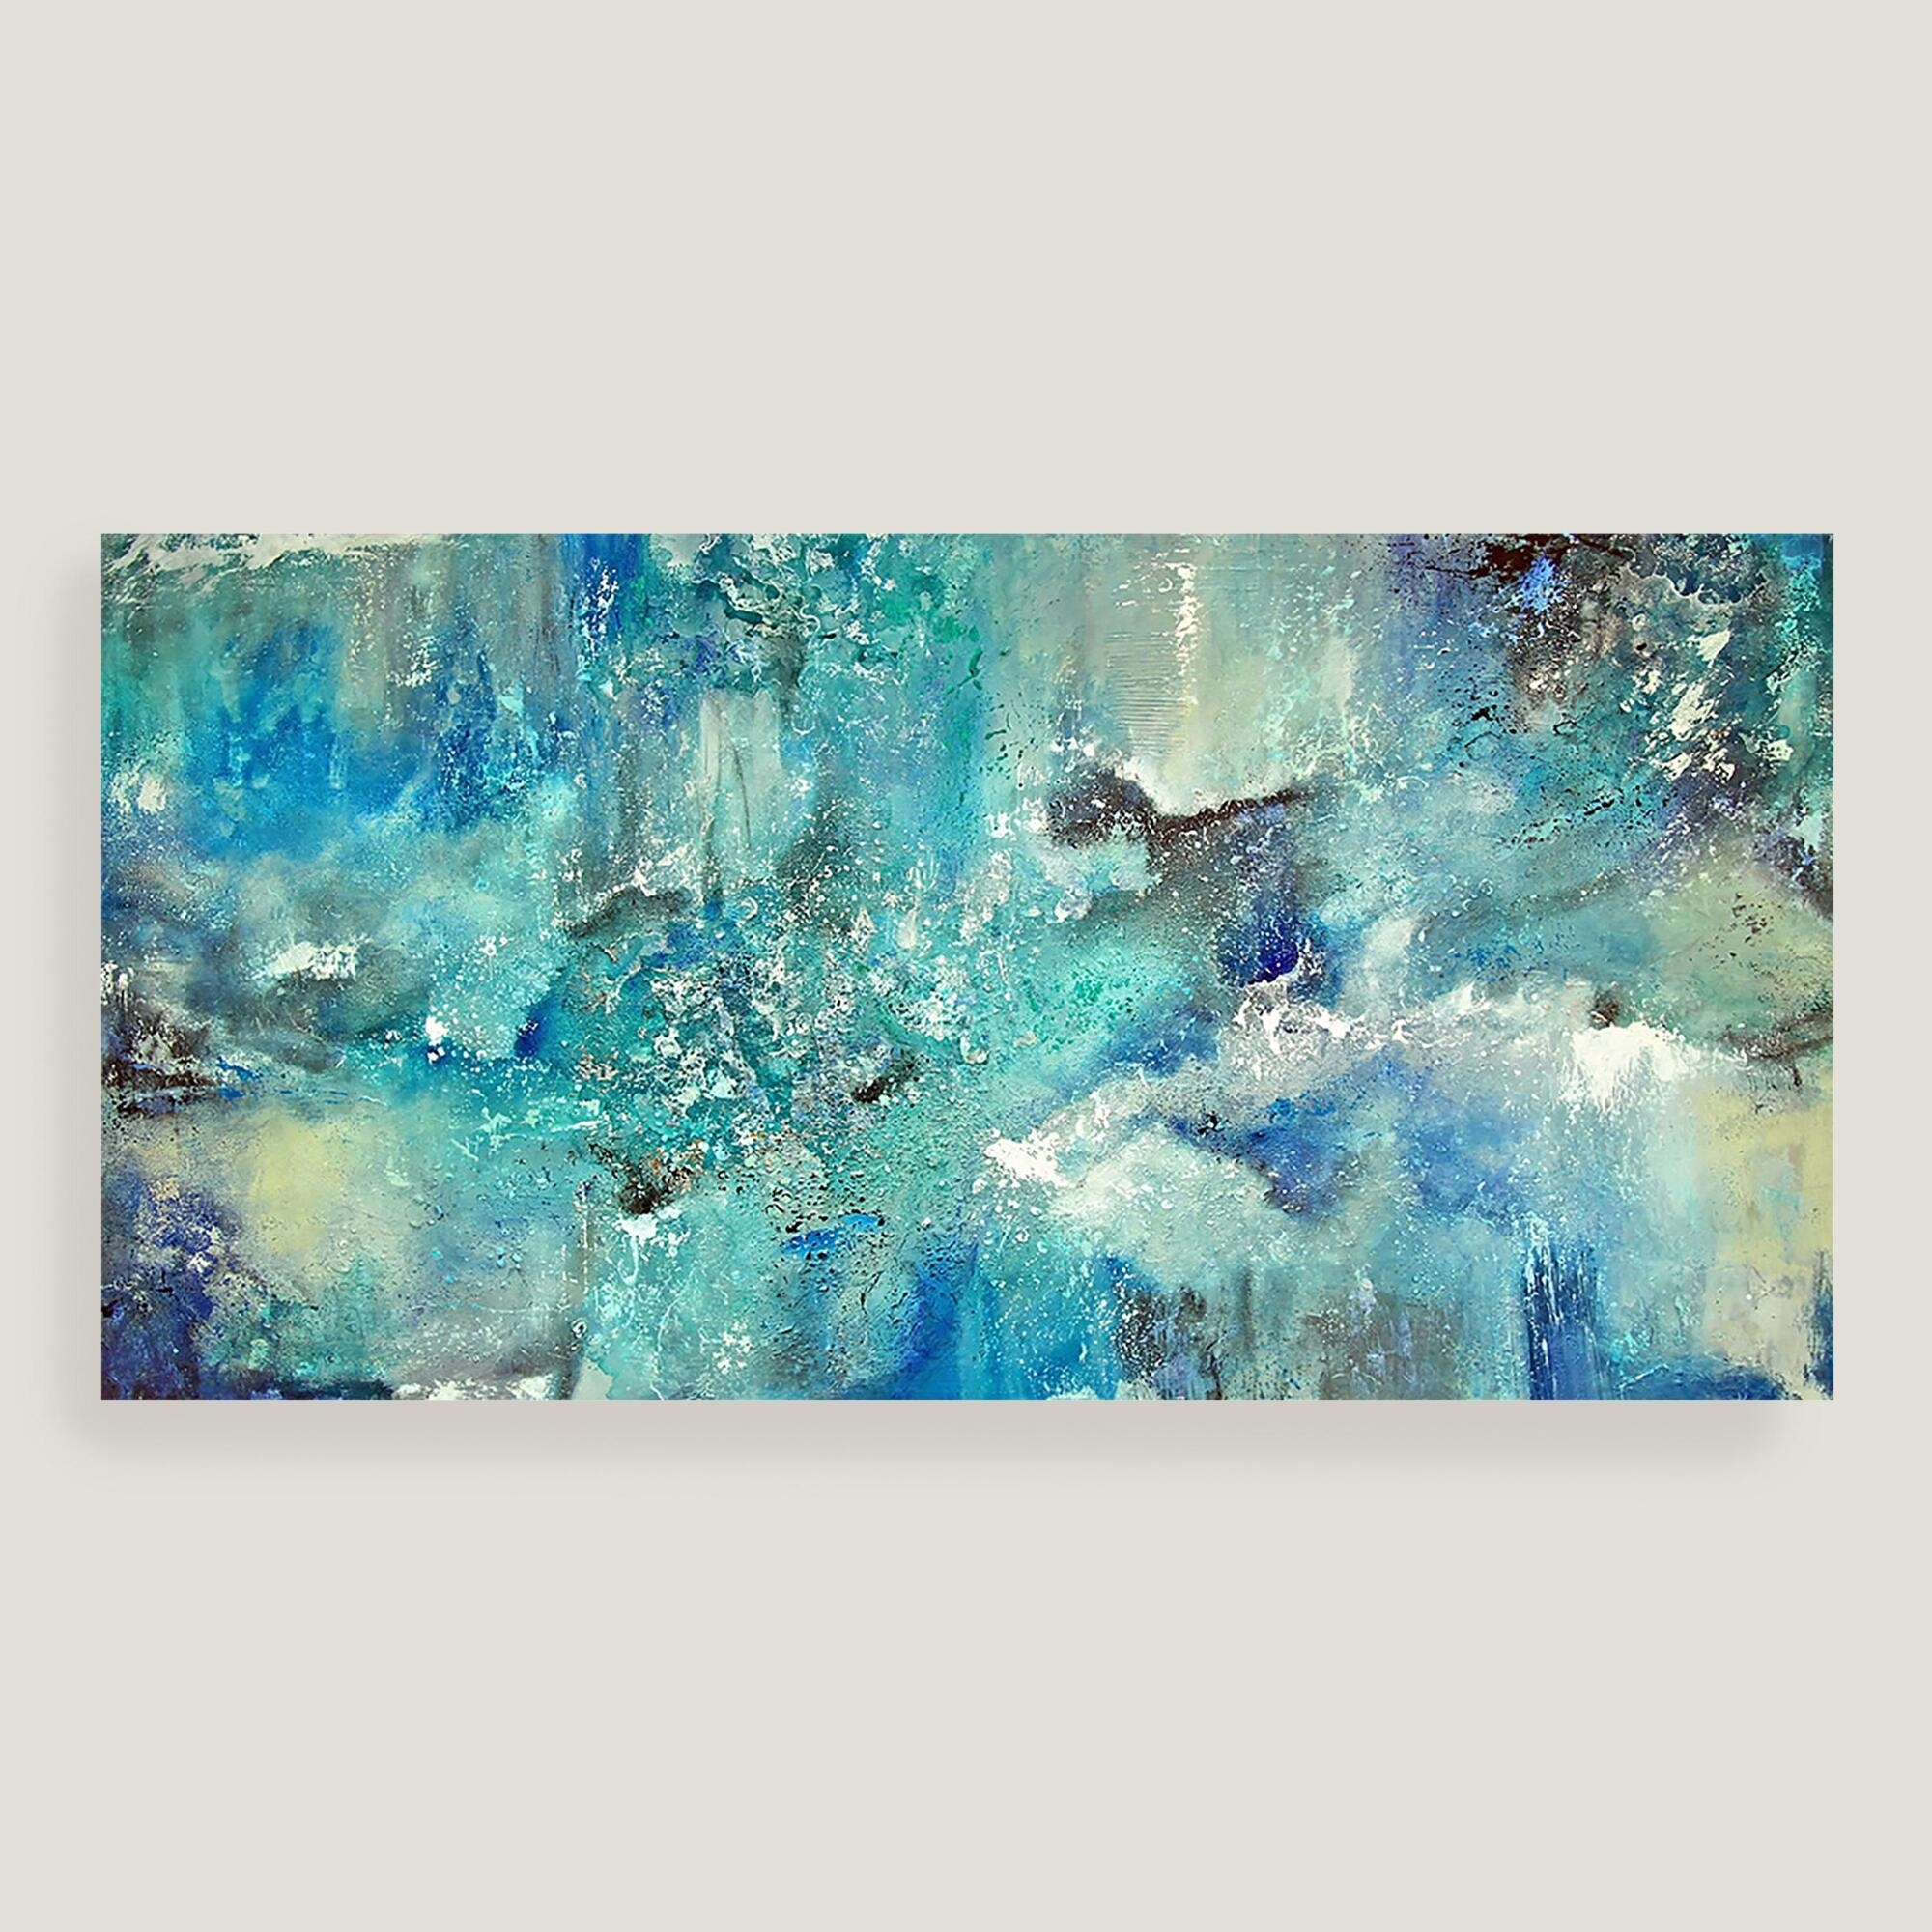 Wall Art: Top 10 Sample Images Blue Canvas Wall Art Blue And White In Recent Blue Canvas Wall Art (View 3 of 15)